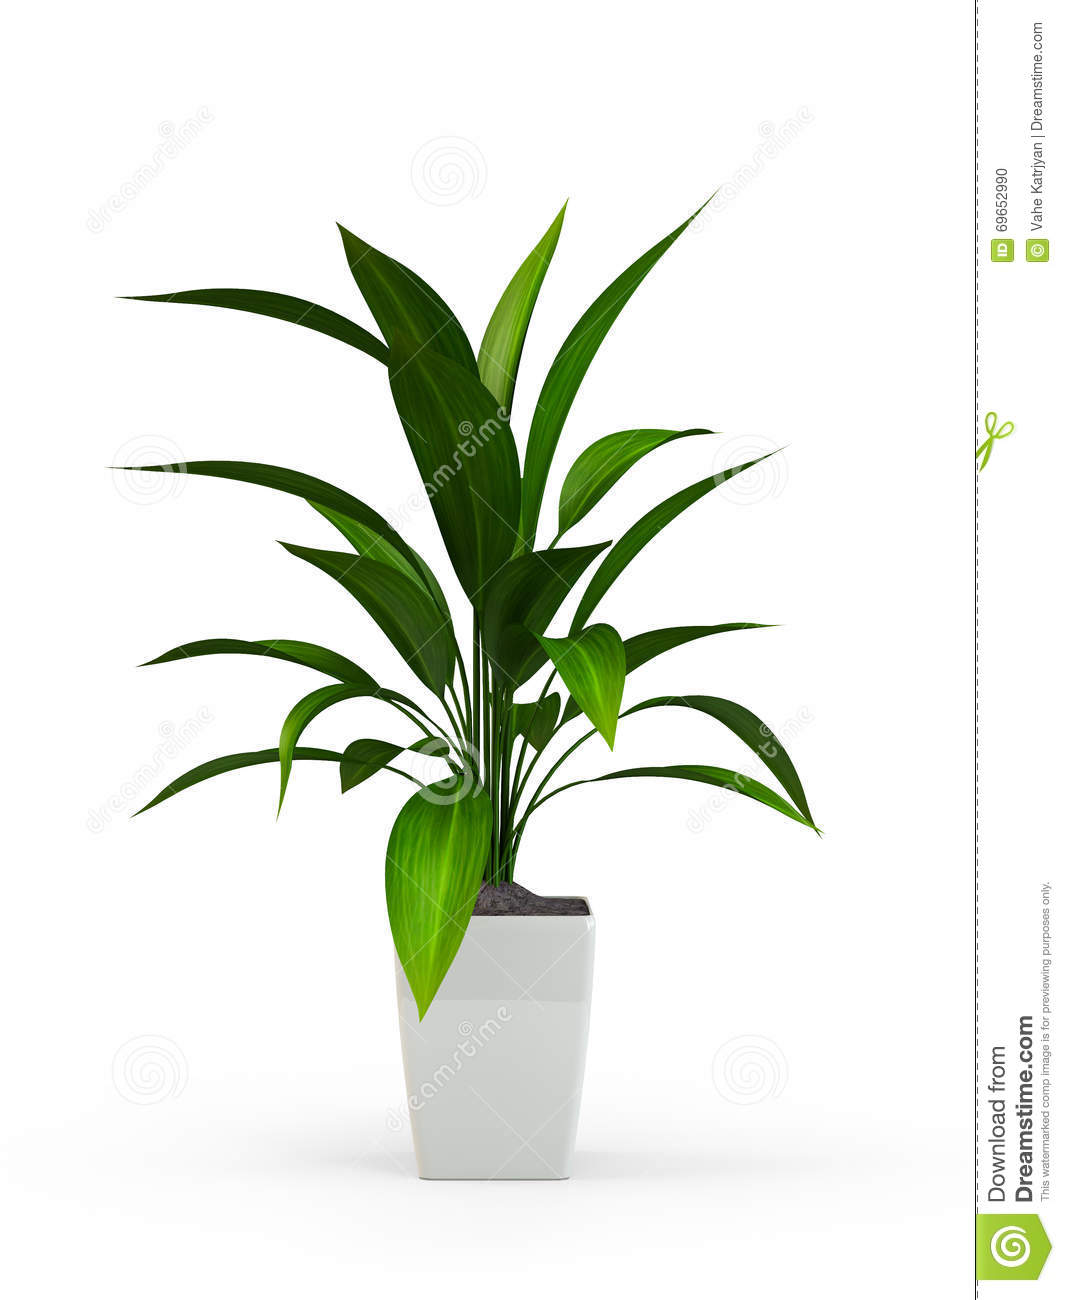 Green Potted Plant Stock Image 69910831